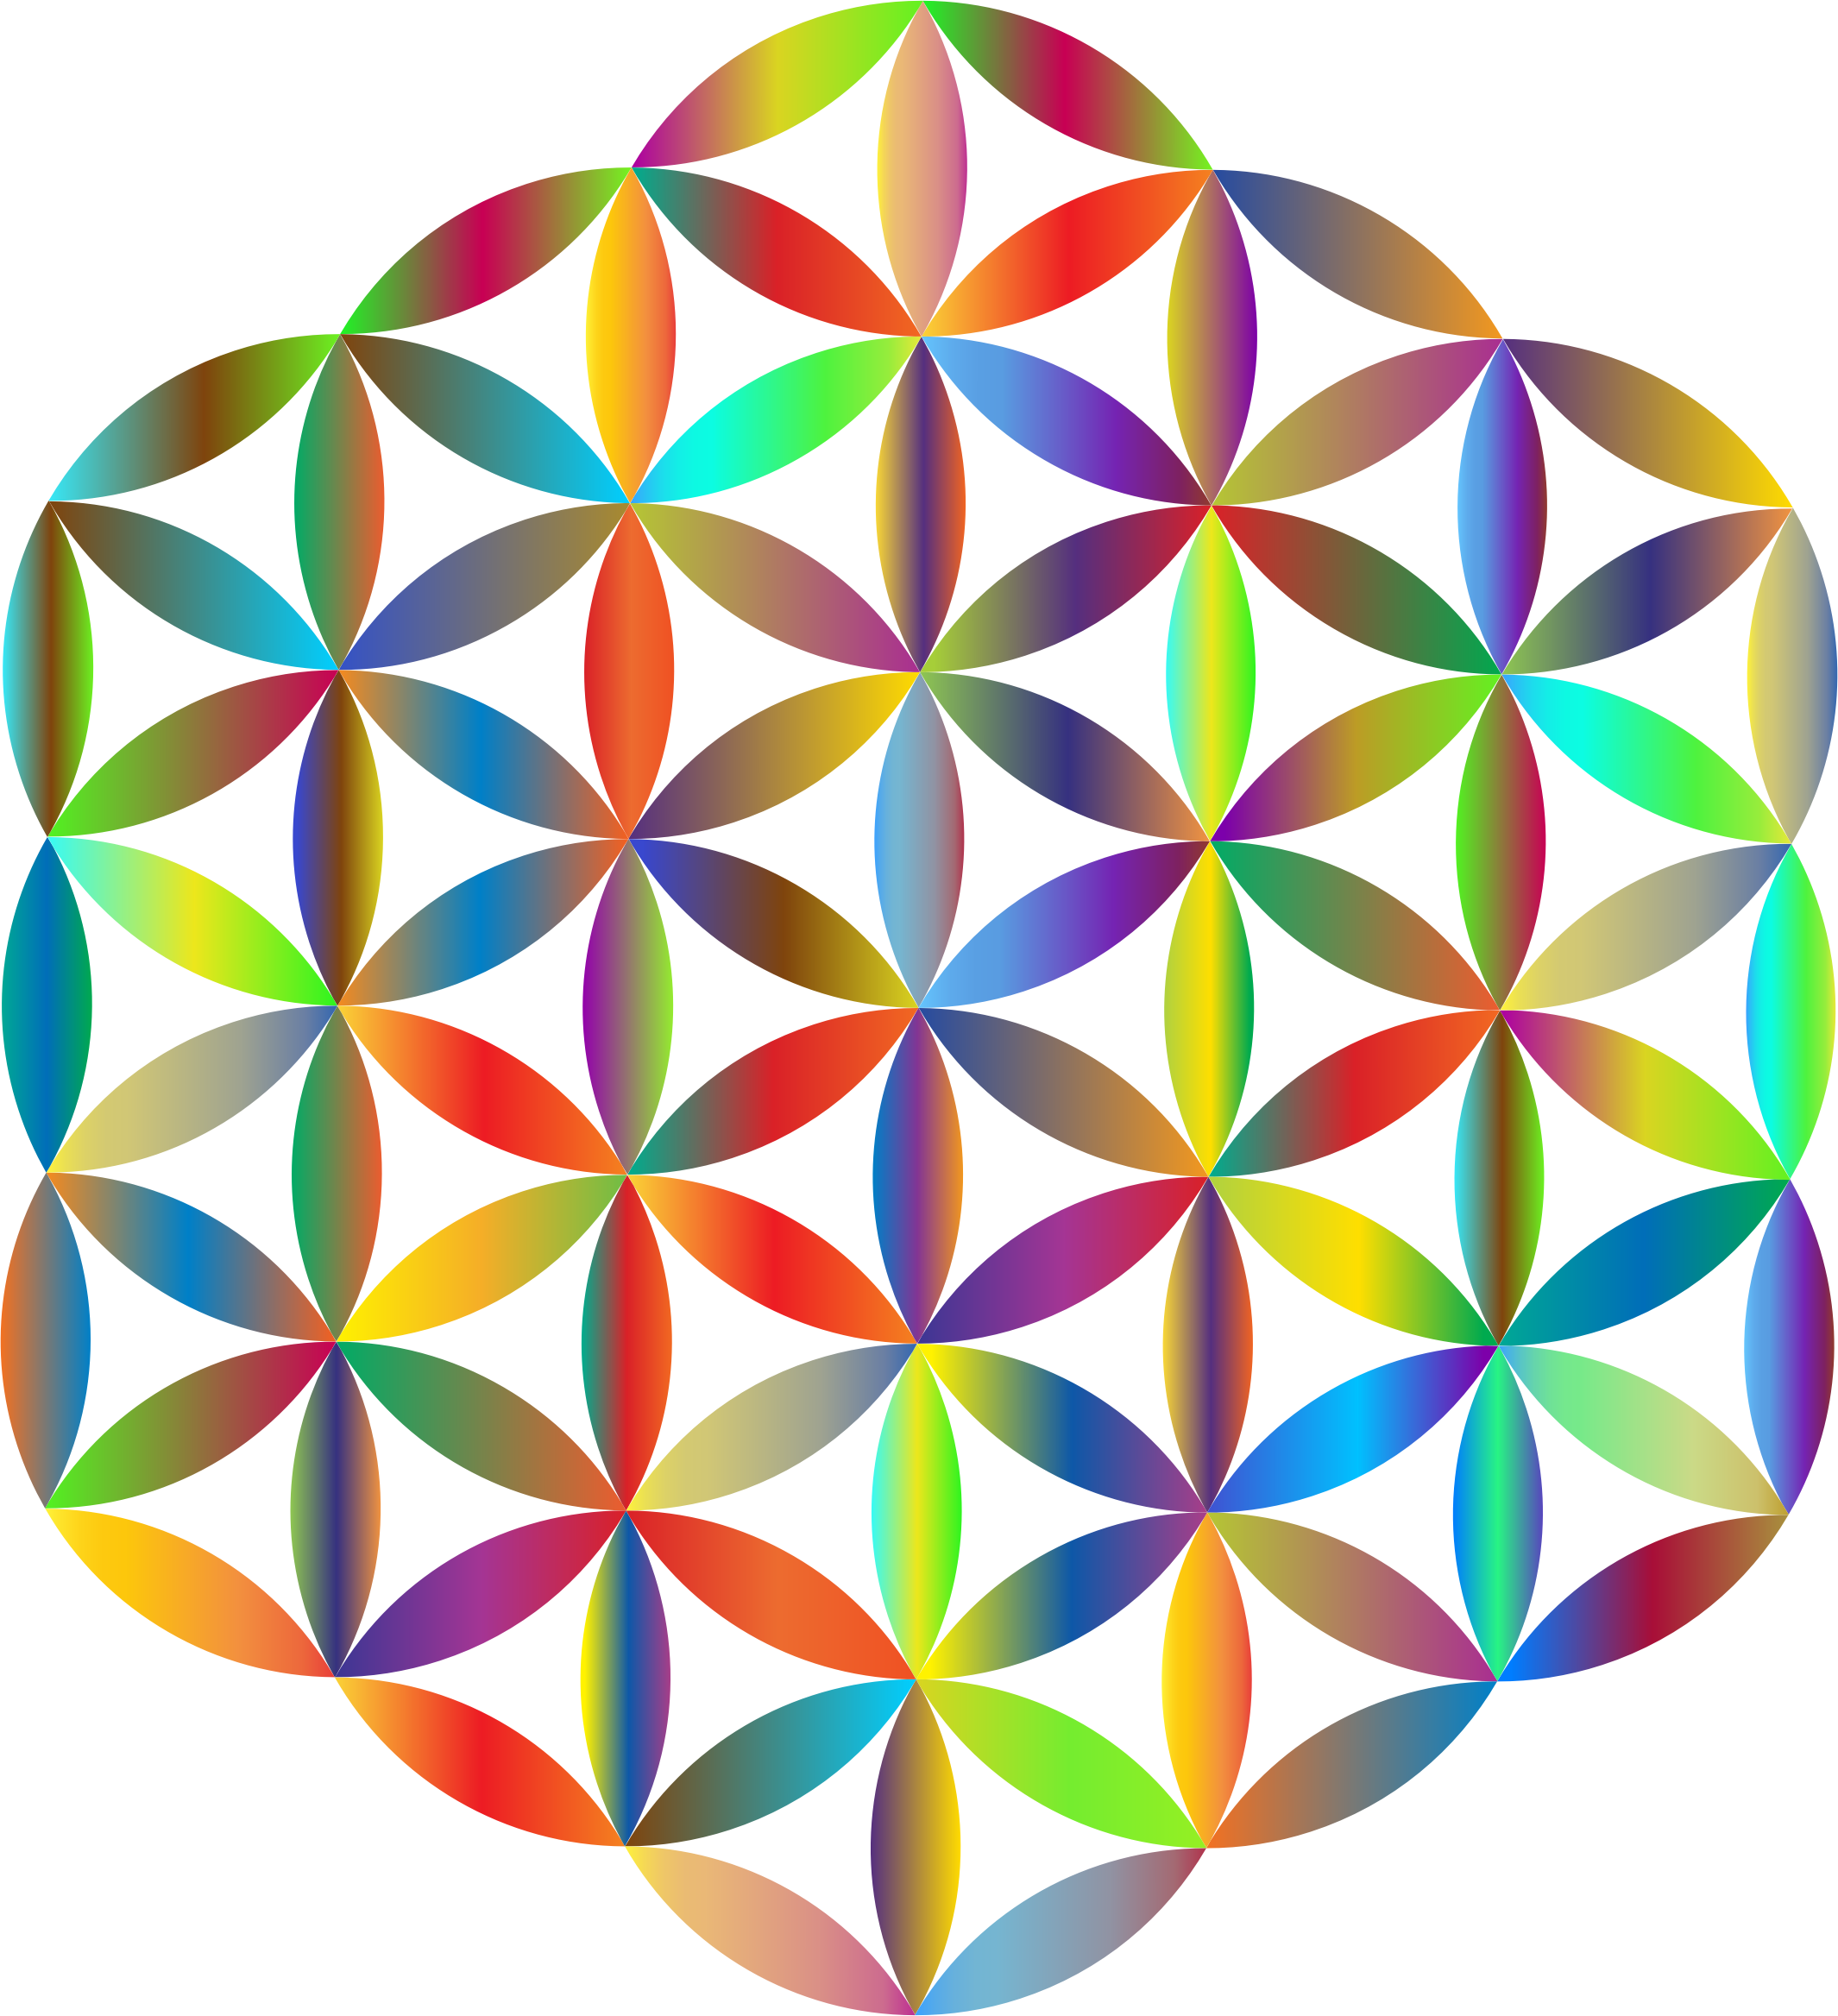 Flower of life png. Prismatic icons free and